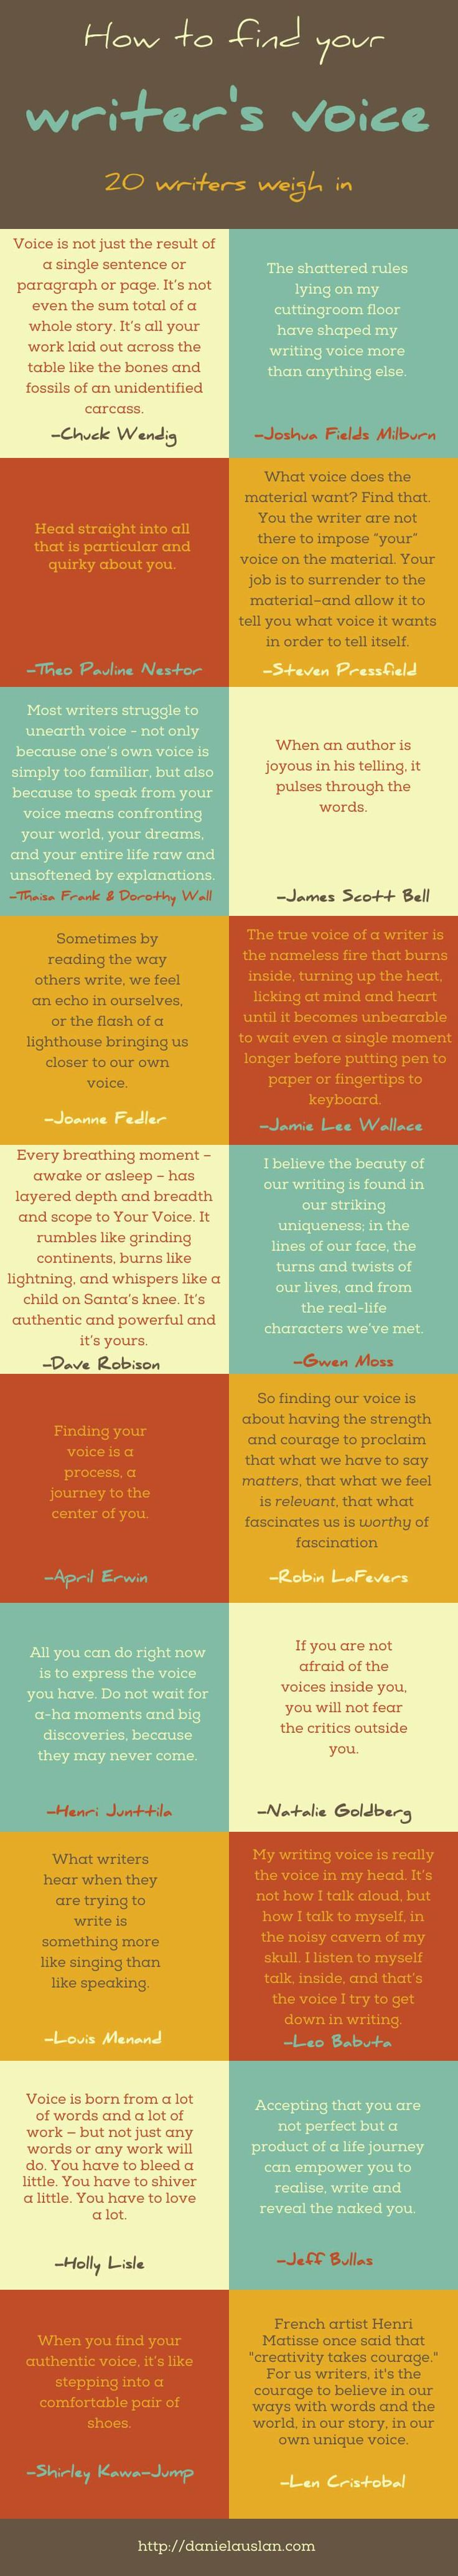 #amWriting How to find your writer's voice: 20 writers weigh in (+ an awesome infographic) http://sumo.ly/fr7o